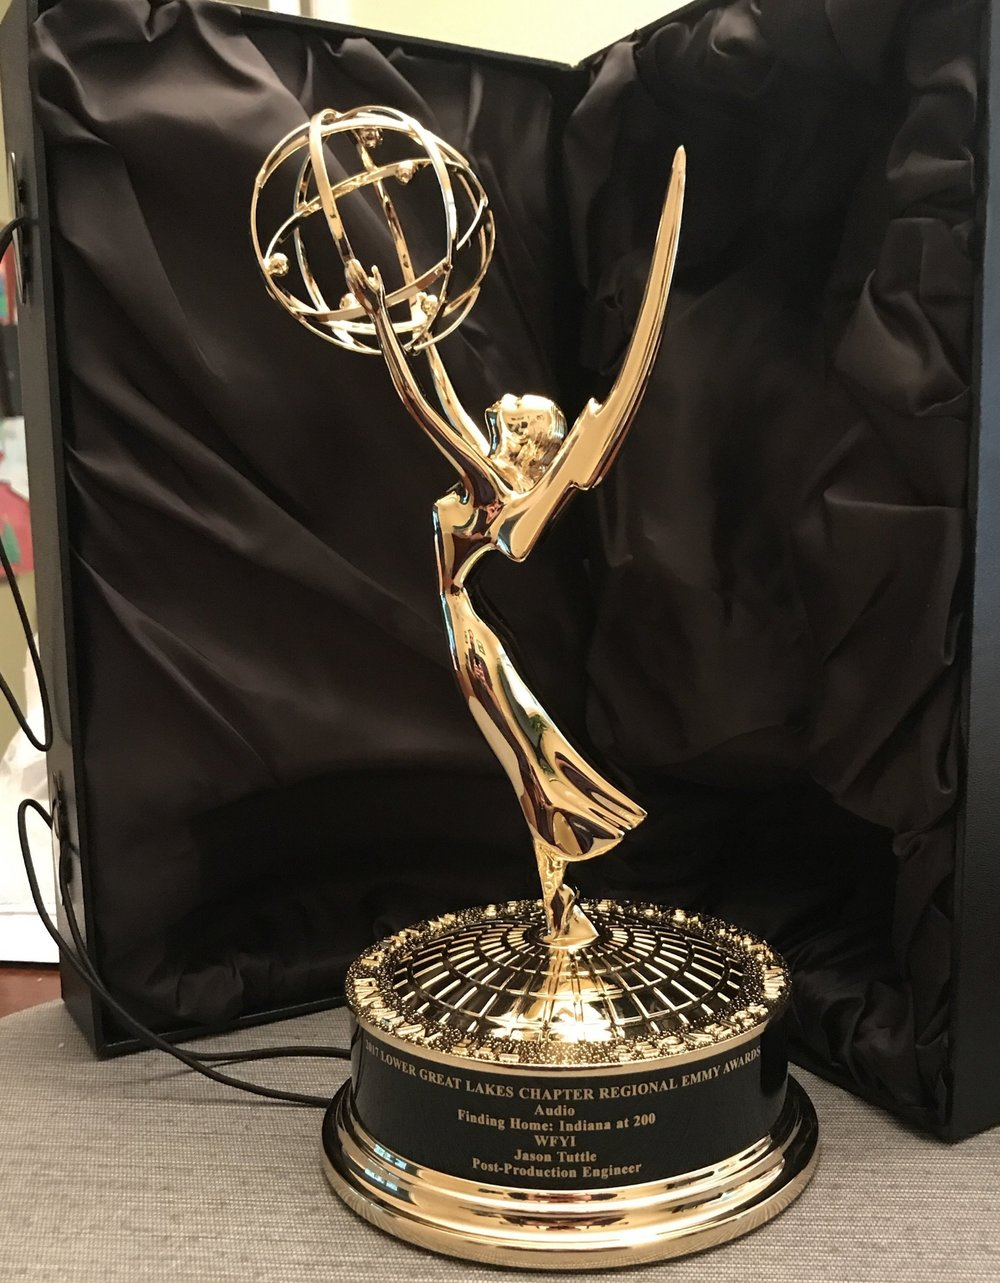 WAT? - A real-live Emmy award!